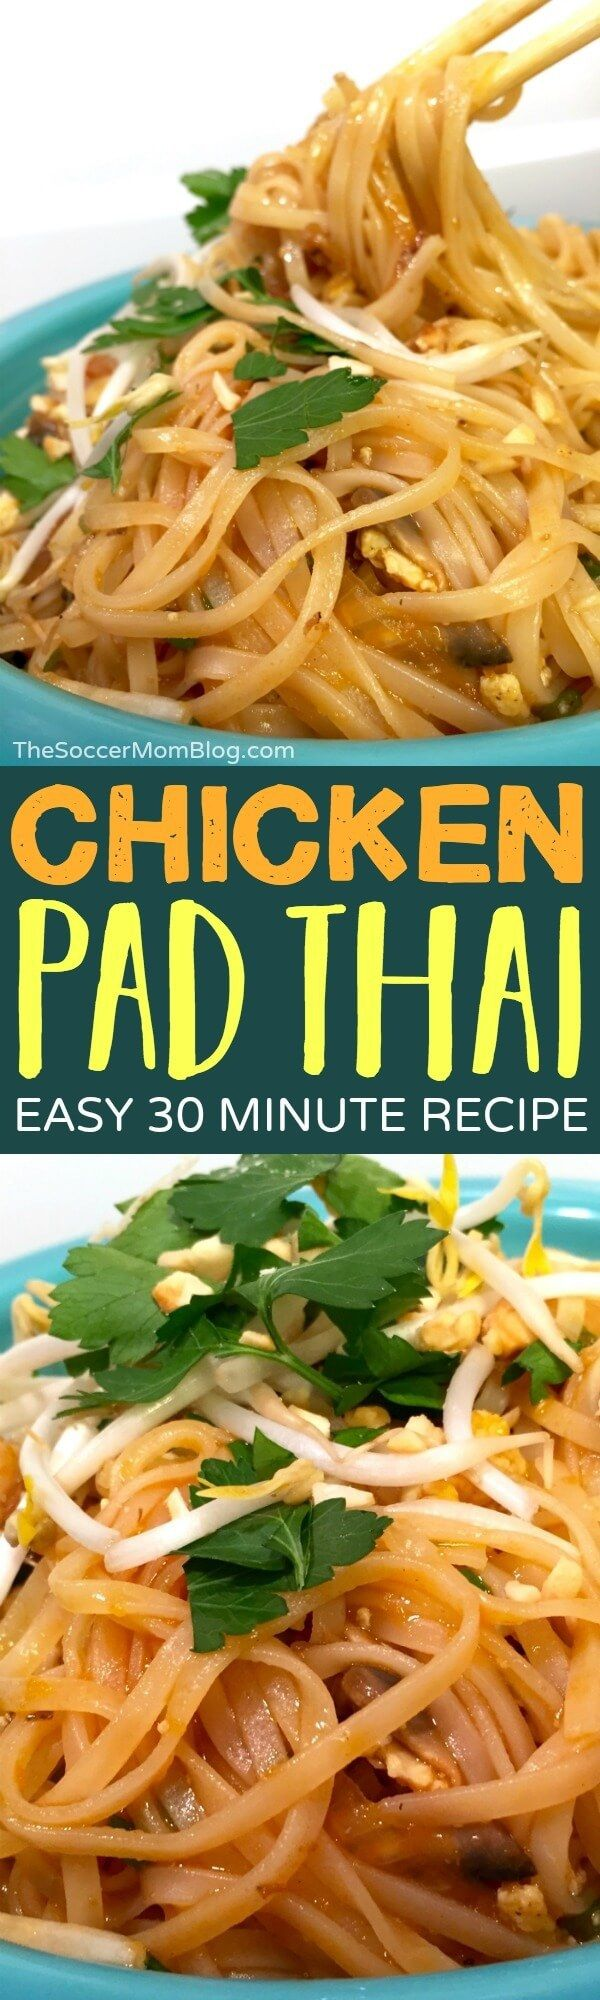 This easy authentic Pad Thai recipe is everything!Tastes just like takeout— and ready at home in 30 minutes!